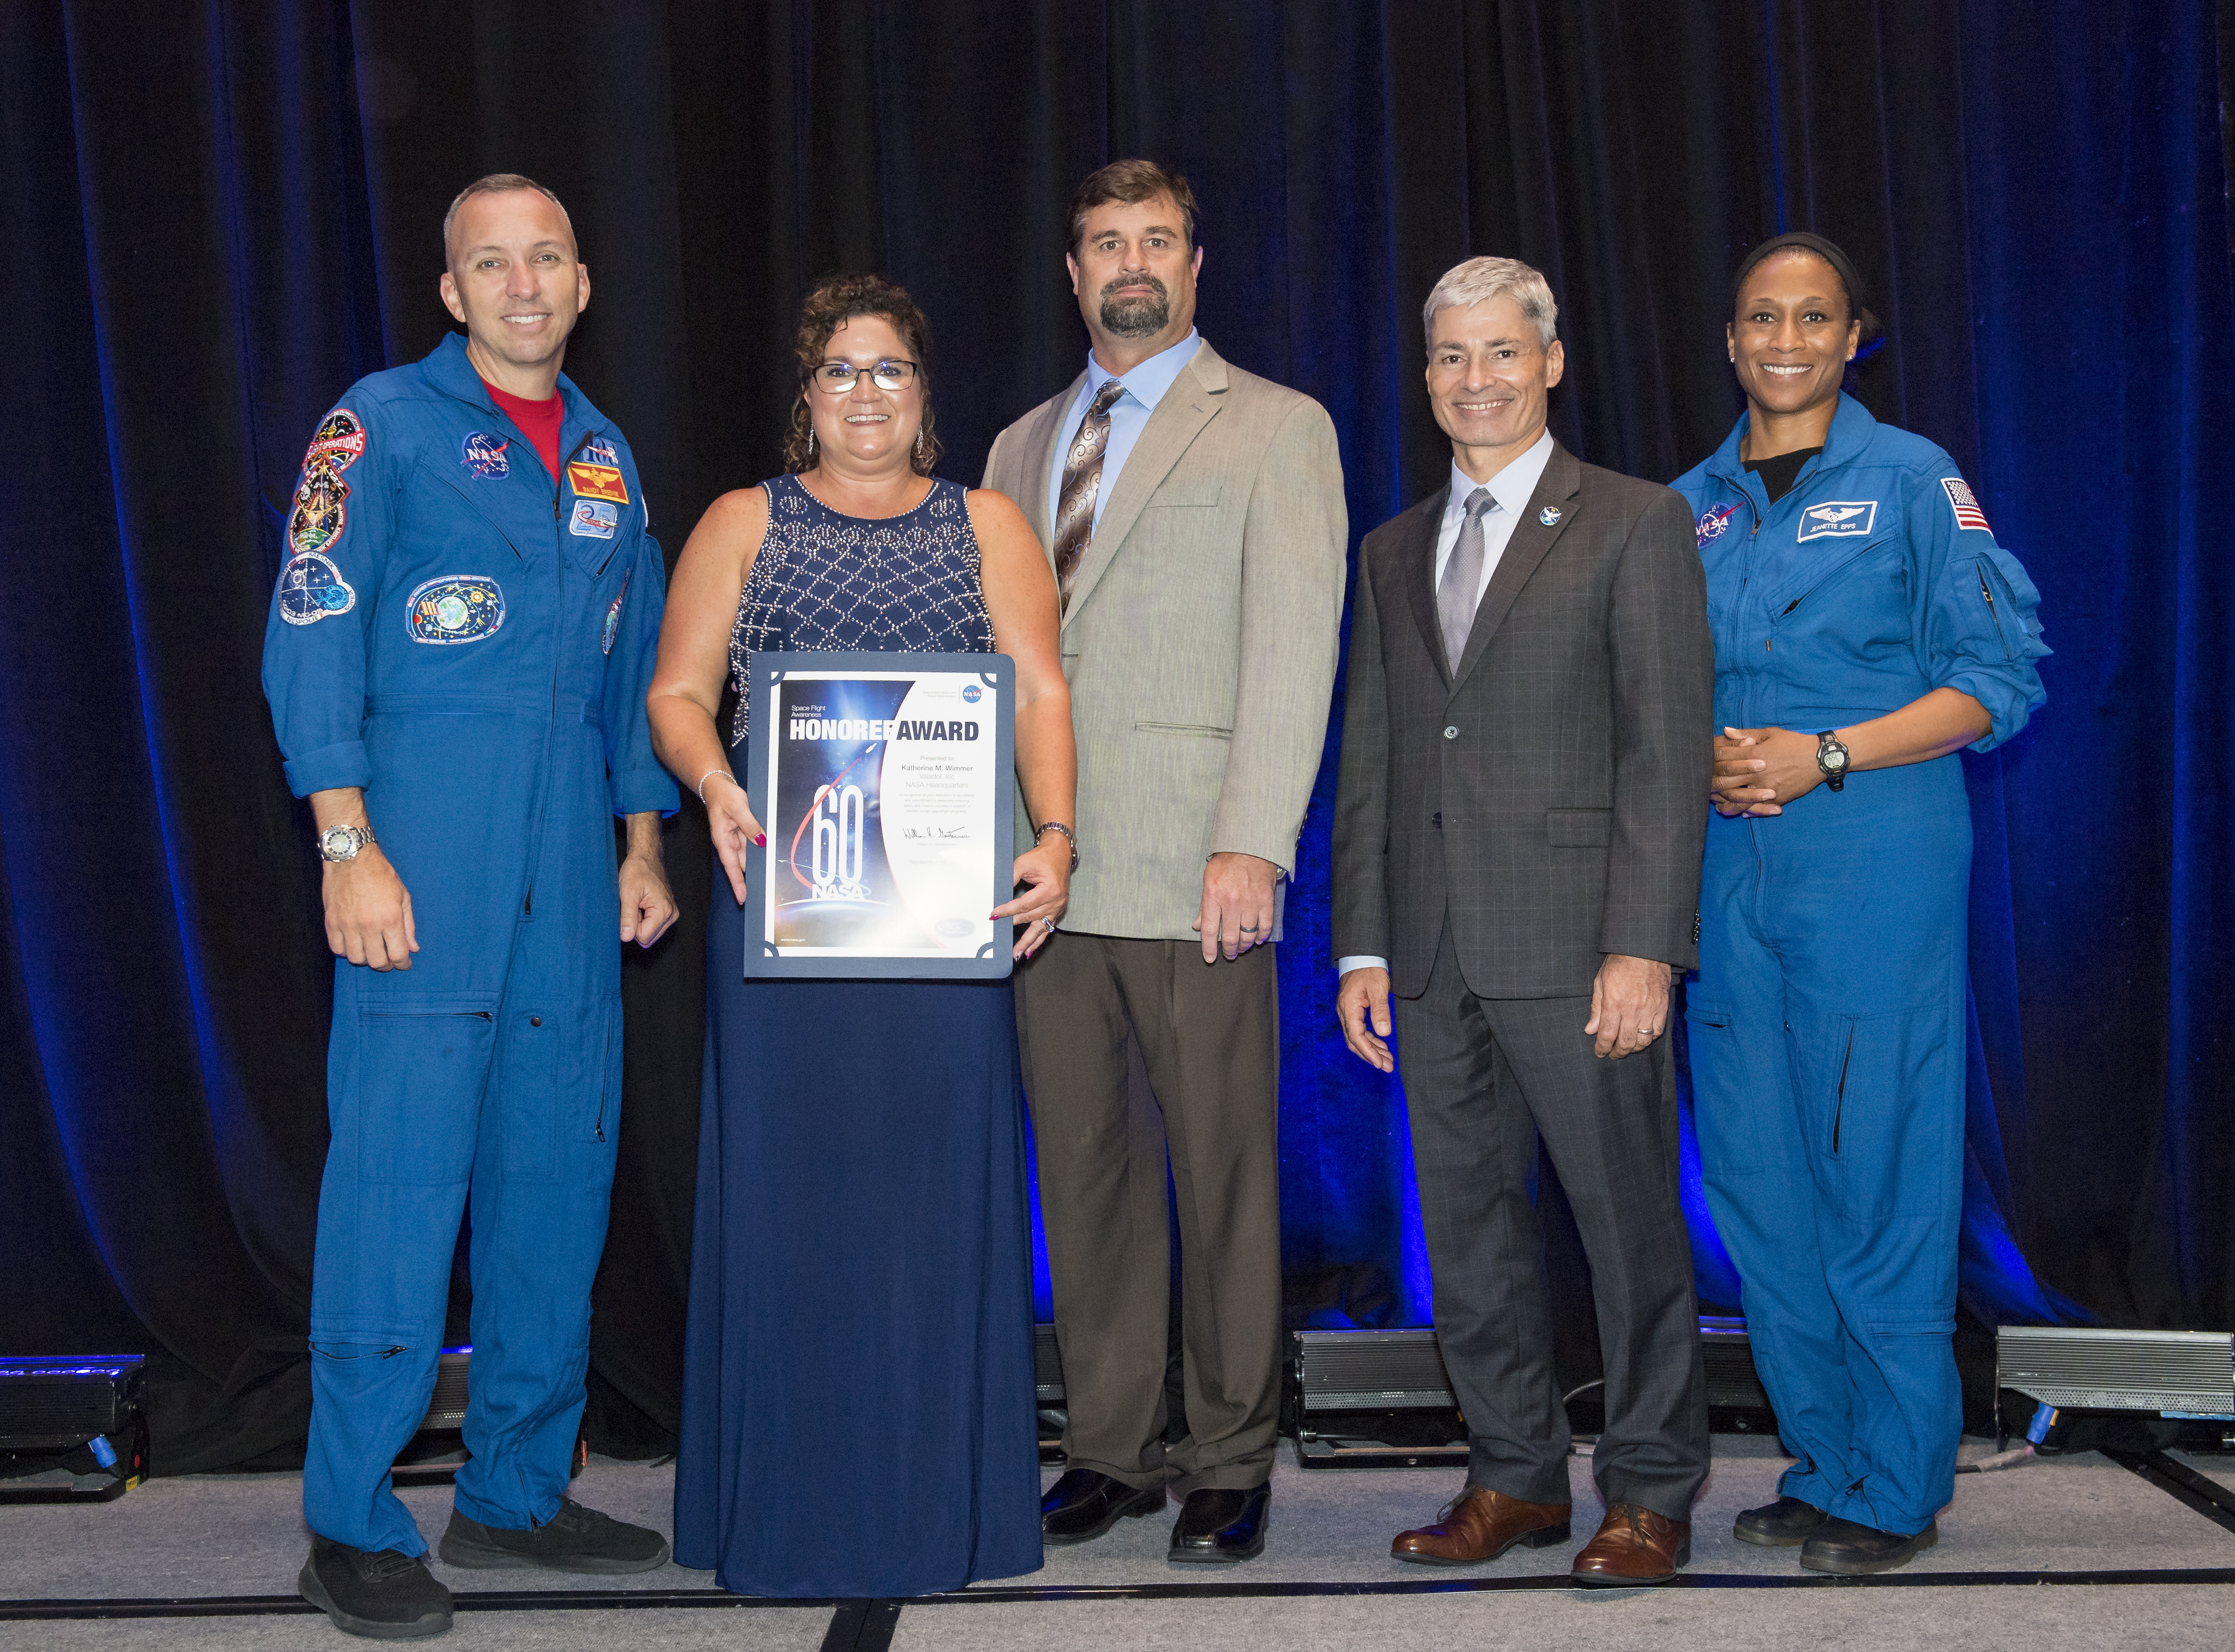 Space Flight Awareness Honoree Award Ceremony